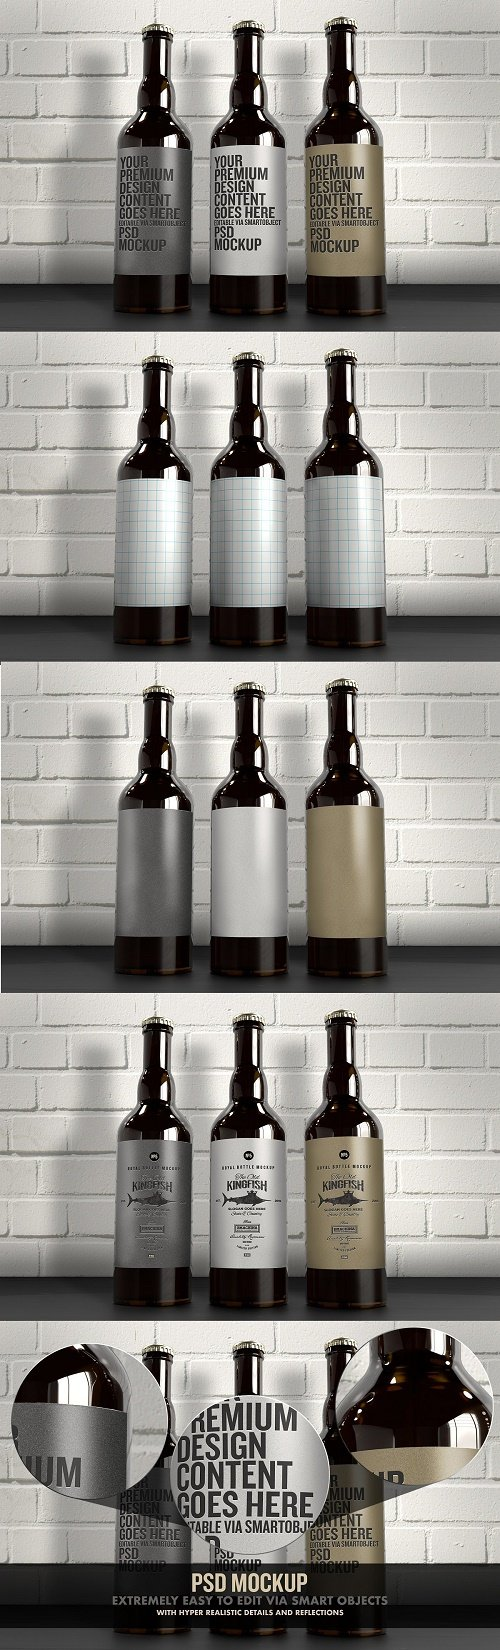 The 3 Beer Bottles Mockup - 4516634